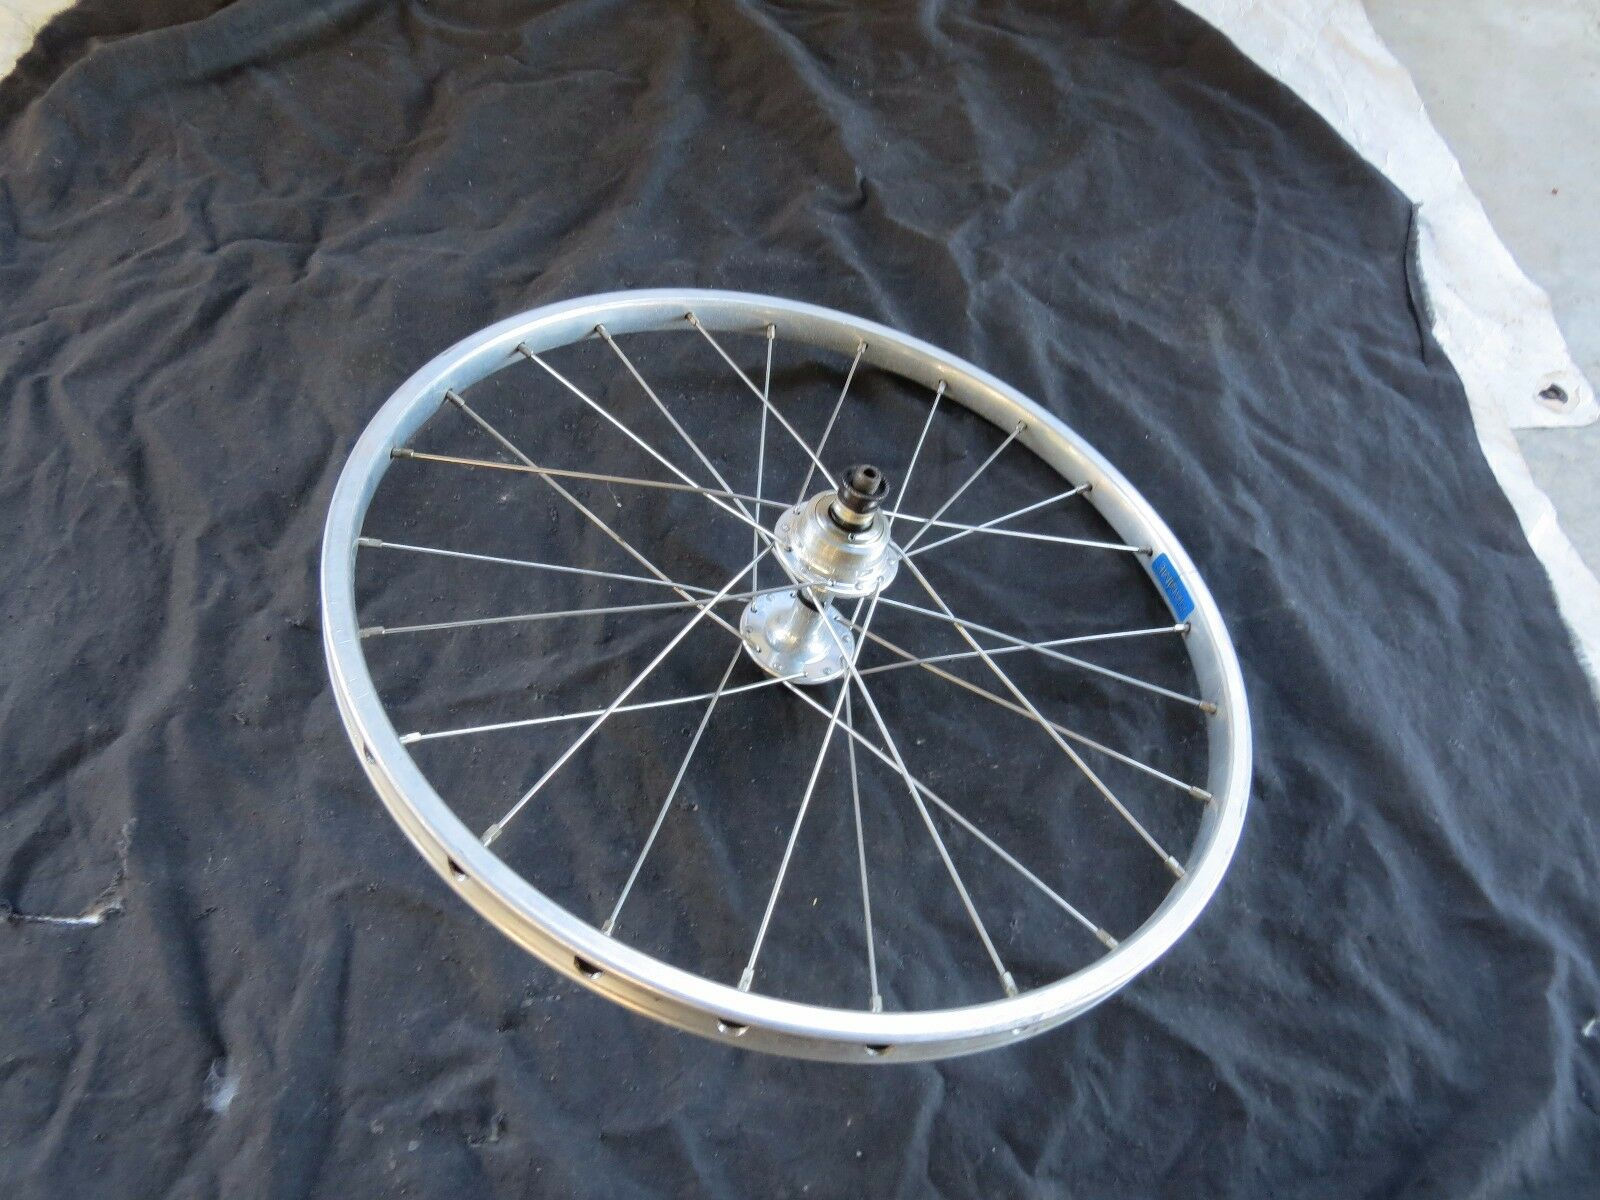 16  FIAMME WHEEL SEW UP CAMPAGNOLO RECORD 24 HOLE ROAD BMX MICRO MINI RACING